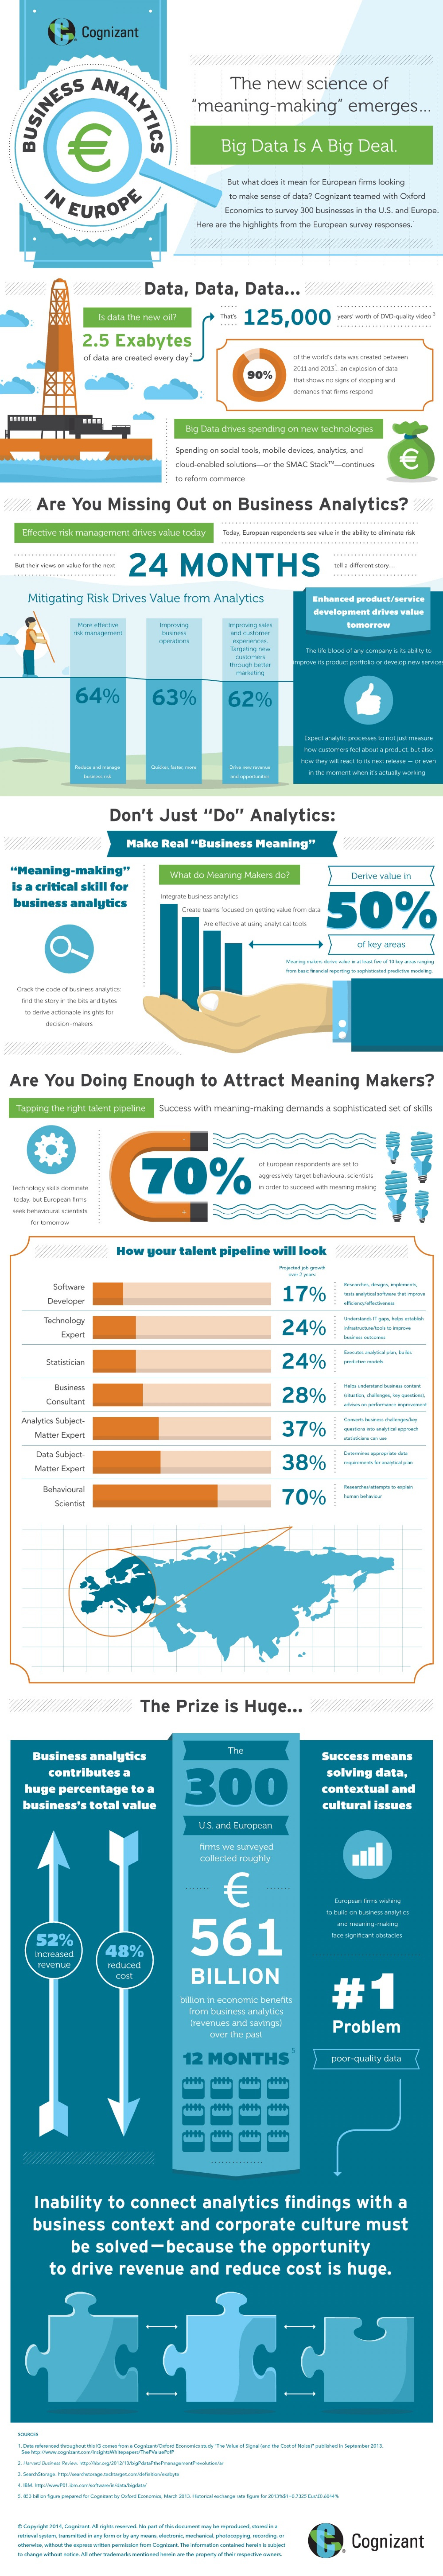 """Business Analytics in Europe: The New Science of """"Meaning-Making"""" Emerges... Infographic"""